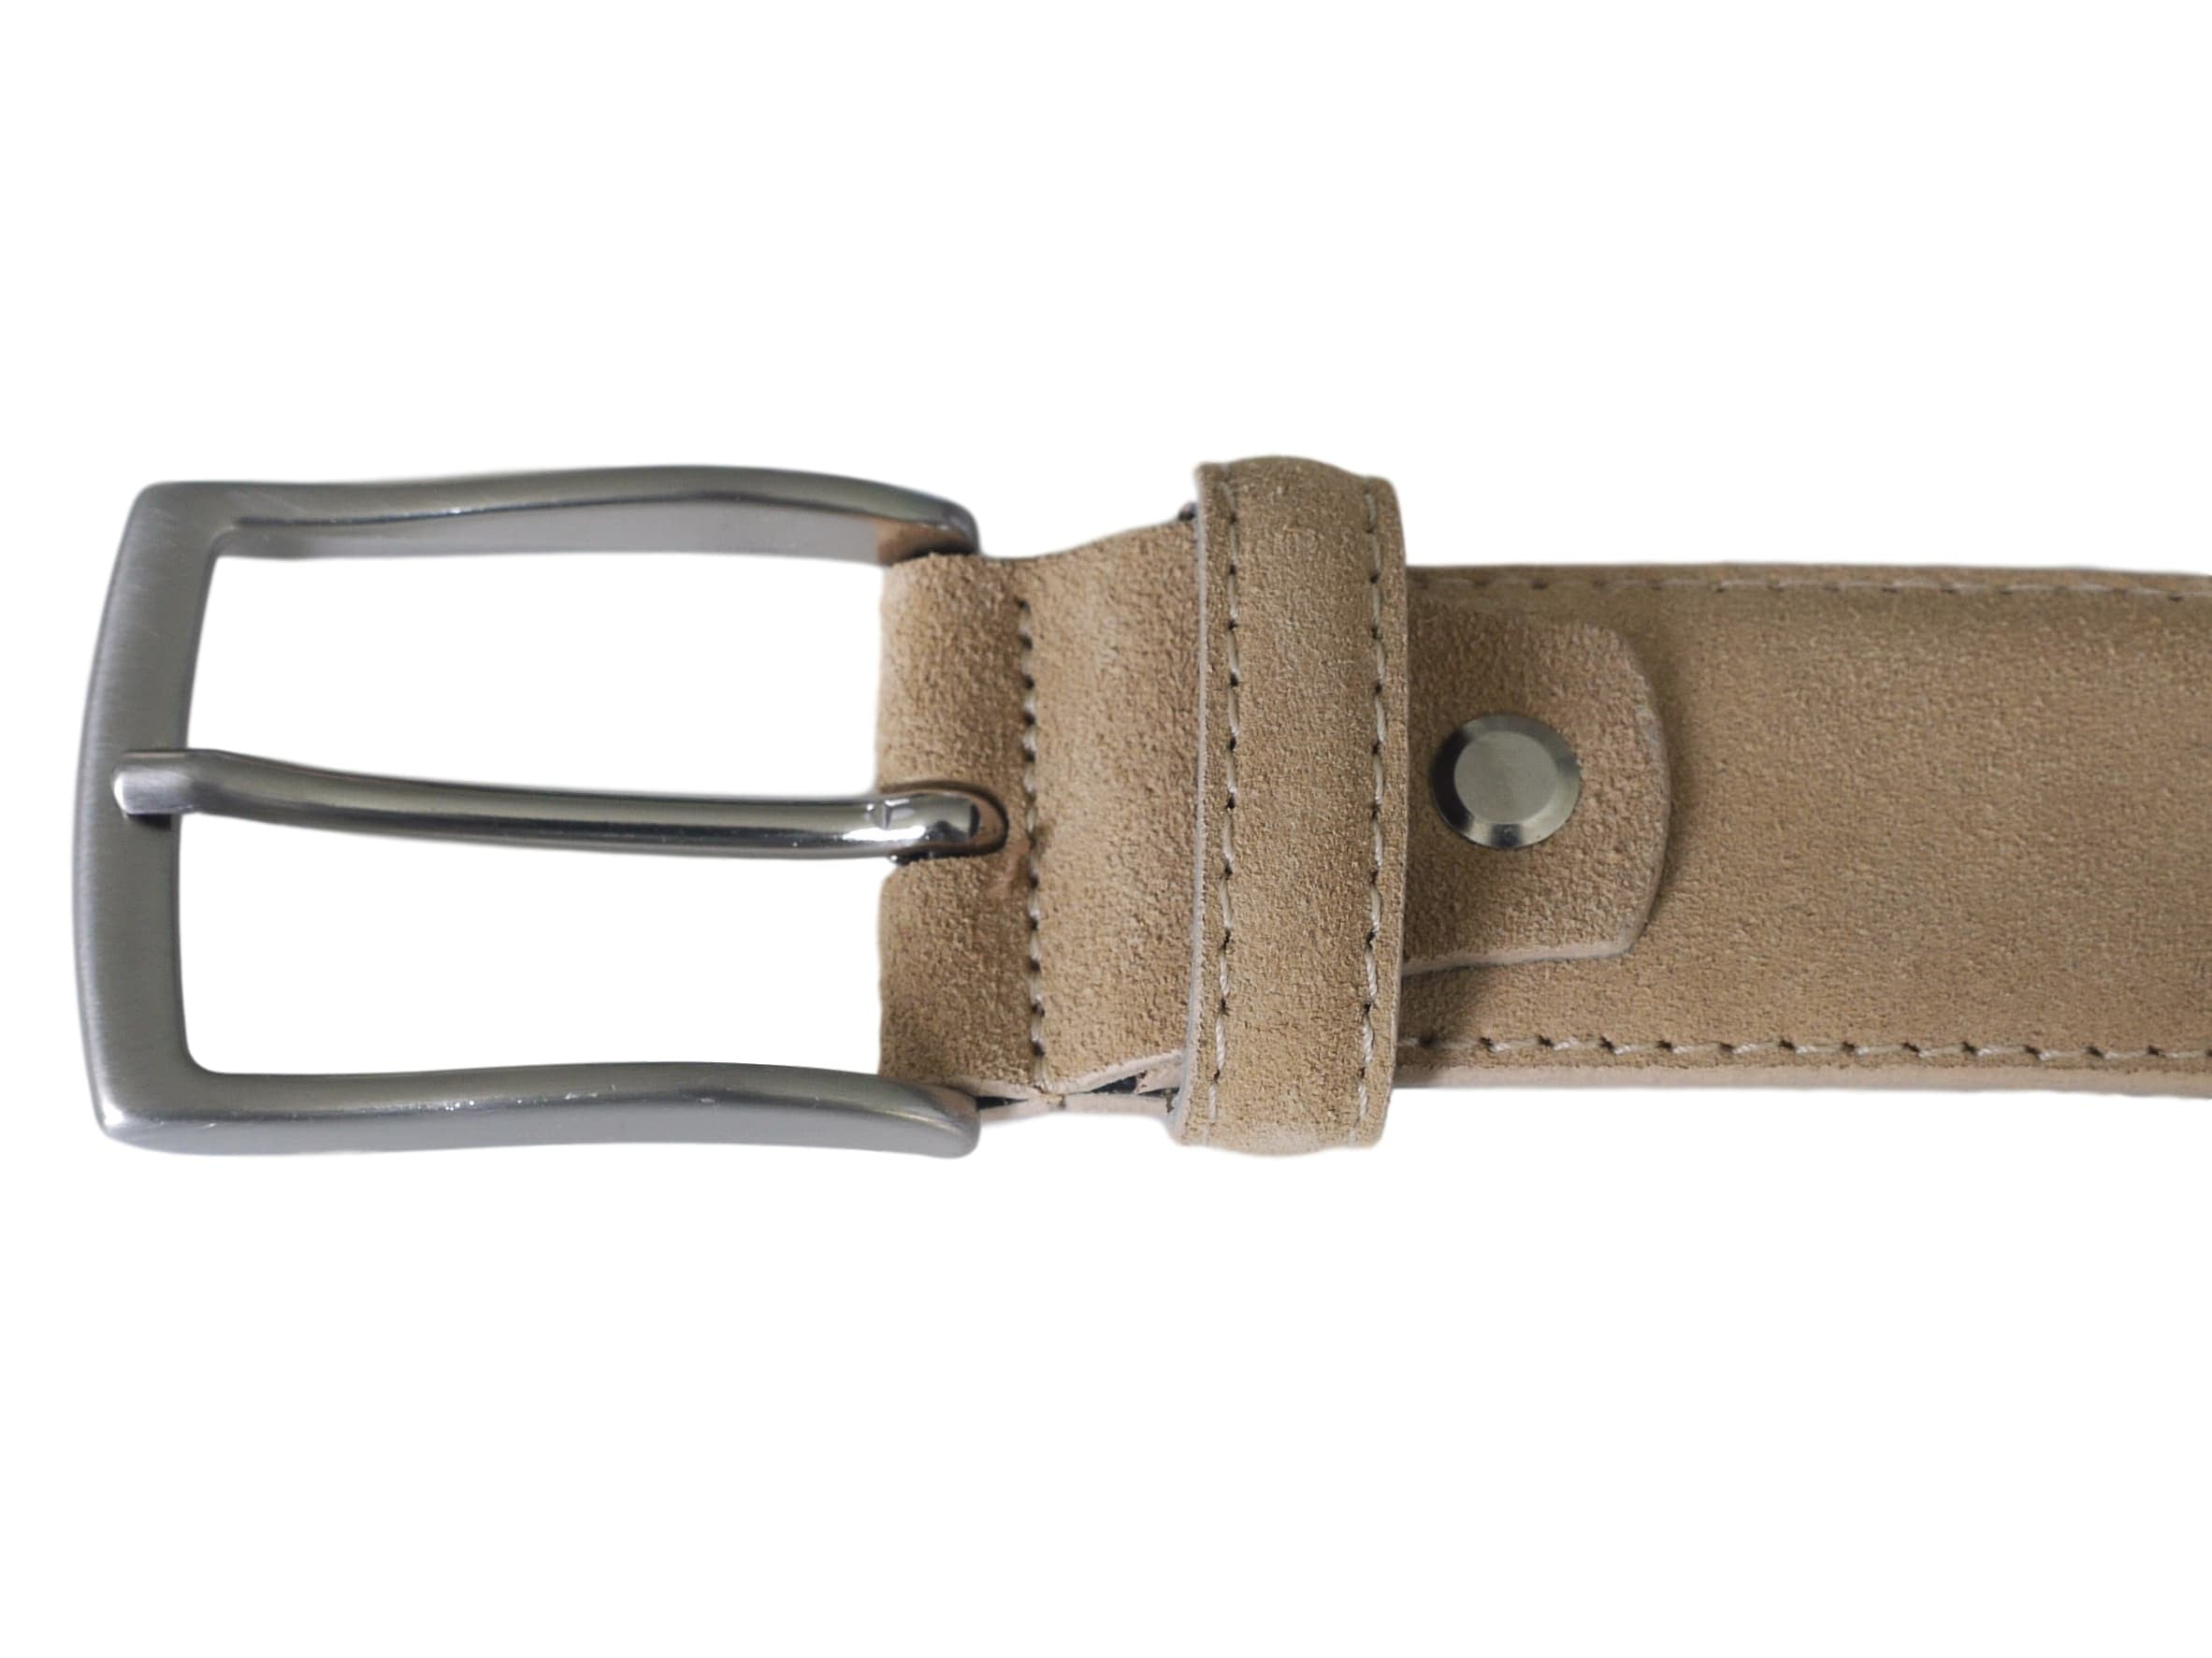 Beige suede leather belt with nickel buckle